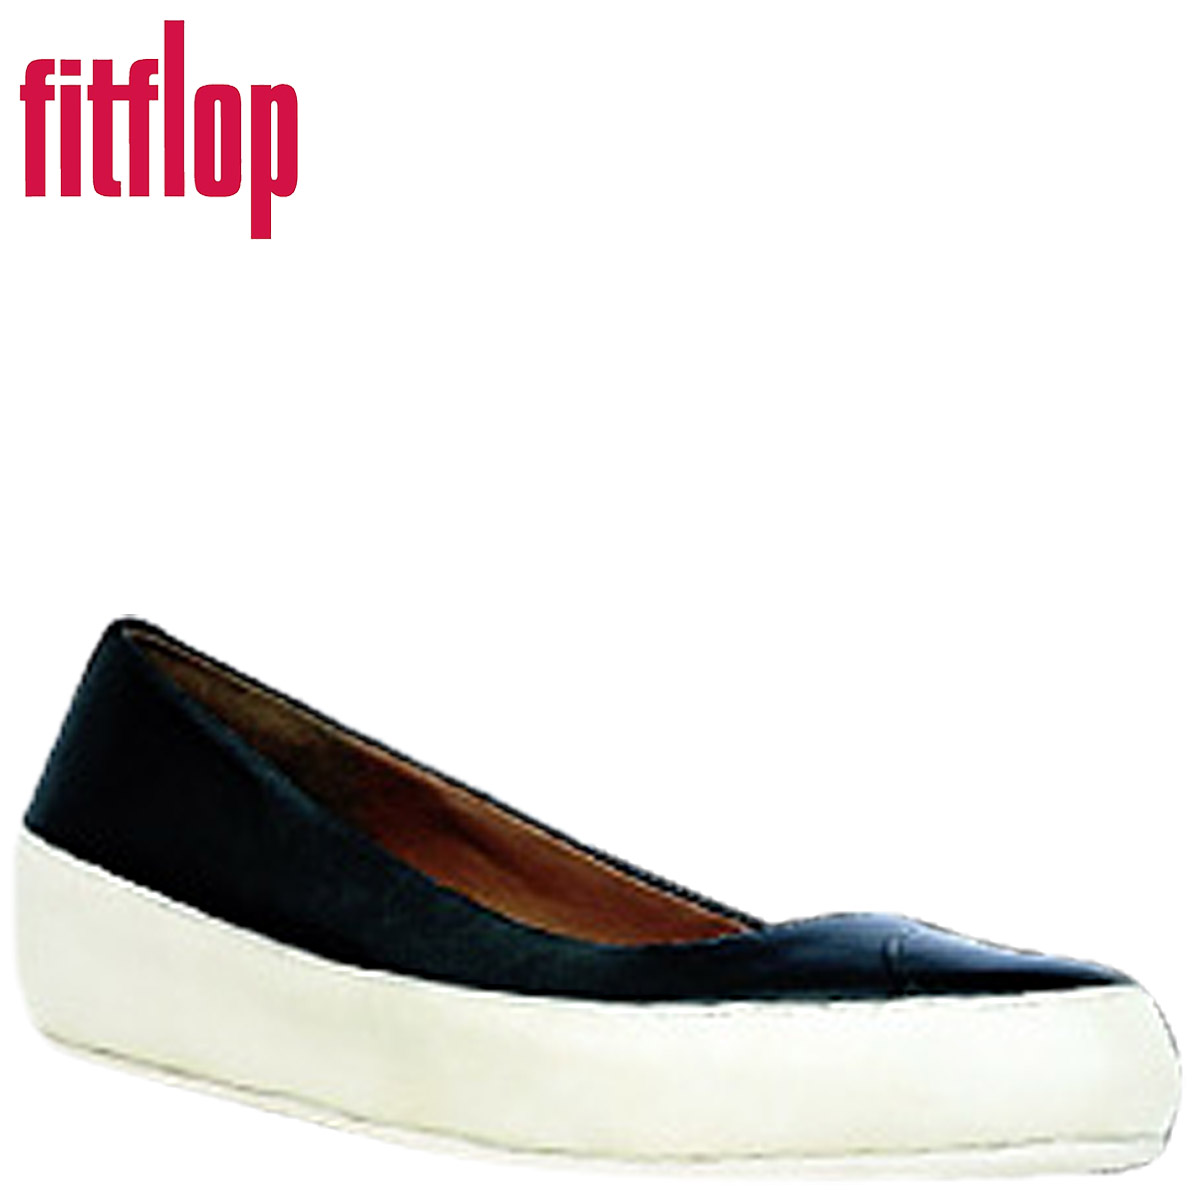 Flop Fitting Douai Leather Online Due ShopFitflop Pumps Sneak Aq5jL3R4